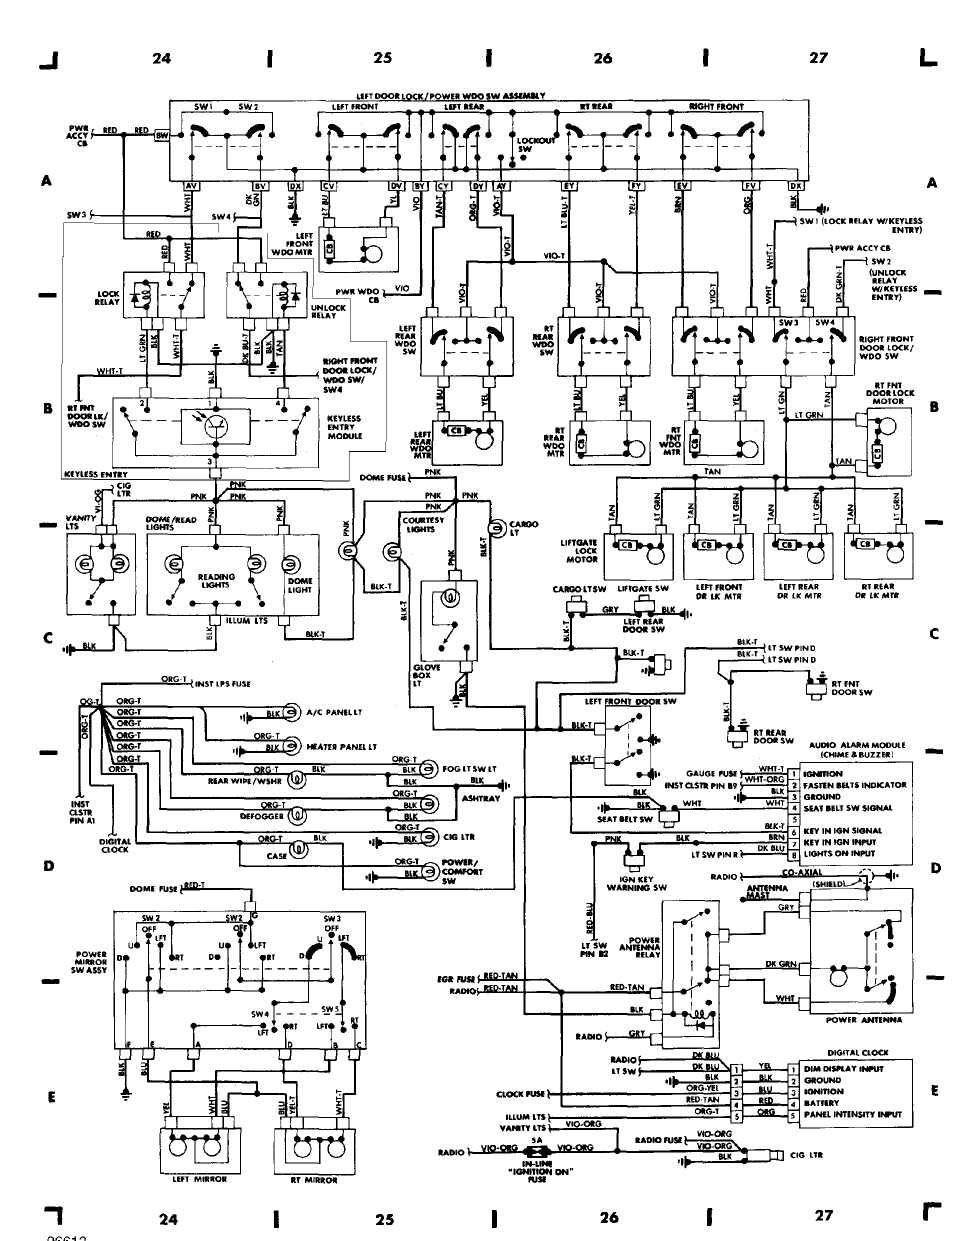 wiring_diagrams_html_61f5e0ad wiring diagrams 1984 1991 jeep cherokee (xj) jeep jeep cherokee wiring diagram at alyssarenee.co